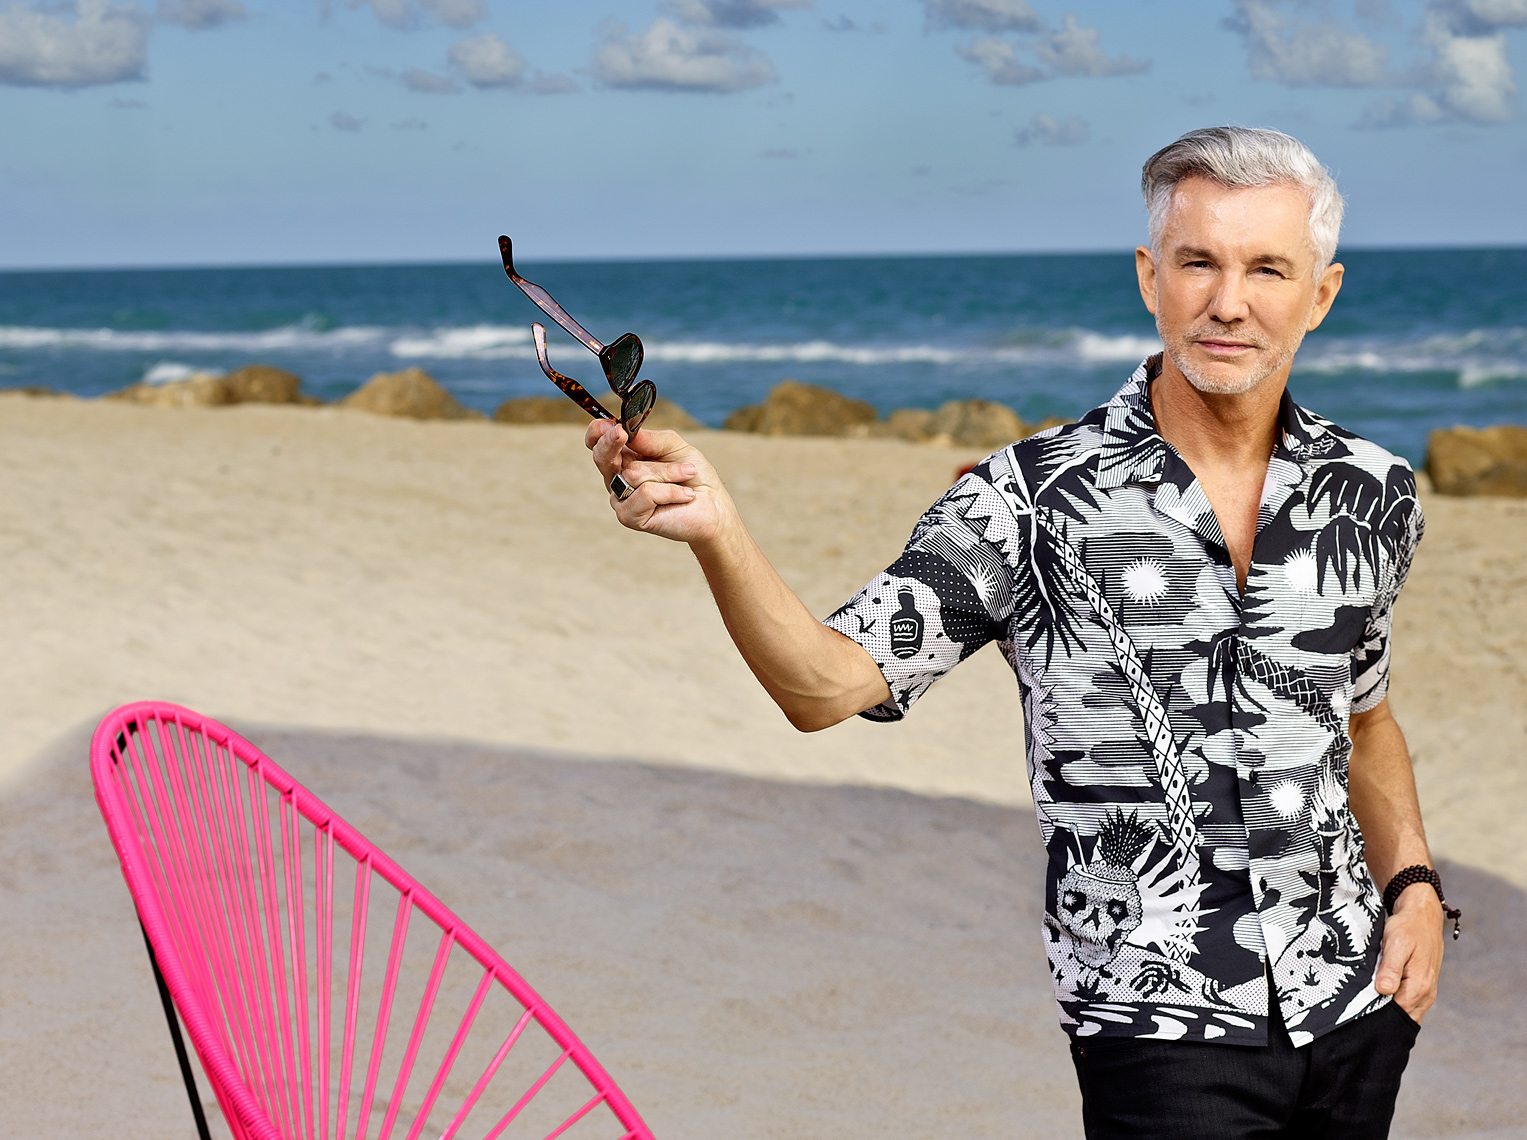 Baz Luhrmann | Film Director |  Miami Beach  Photographer Jeffery Salter